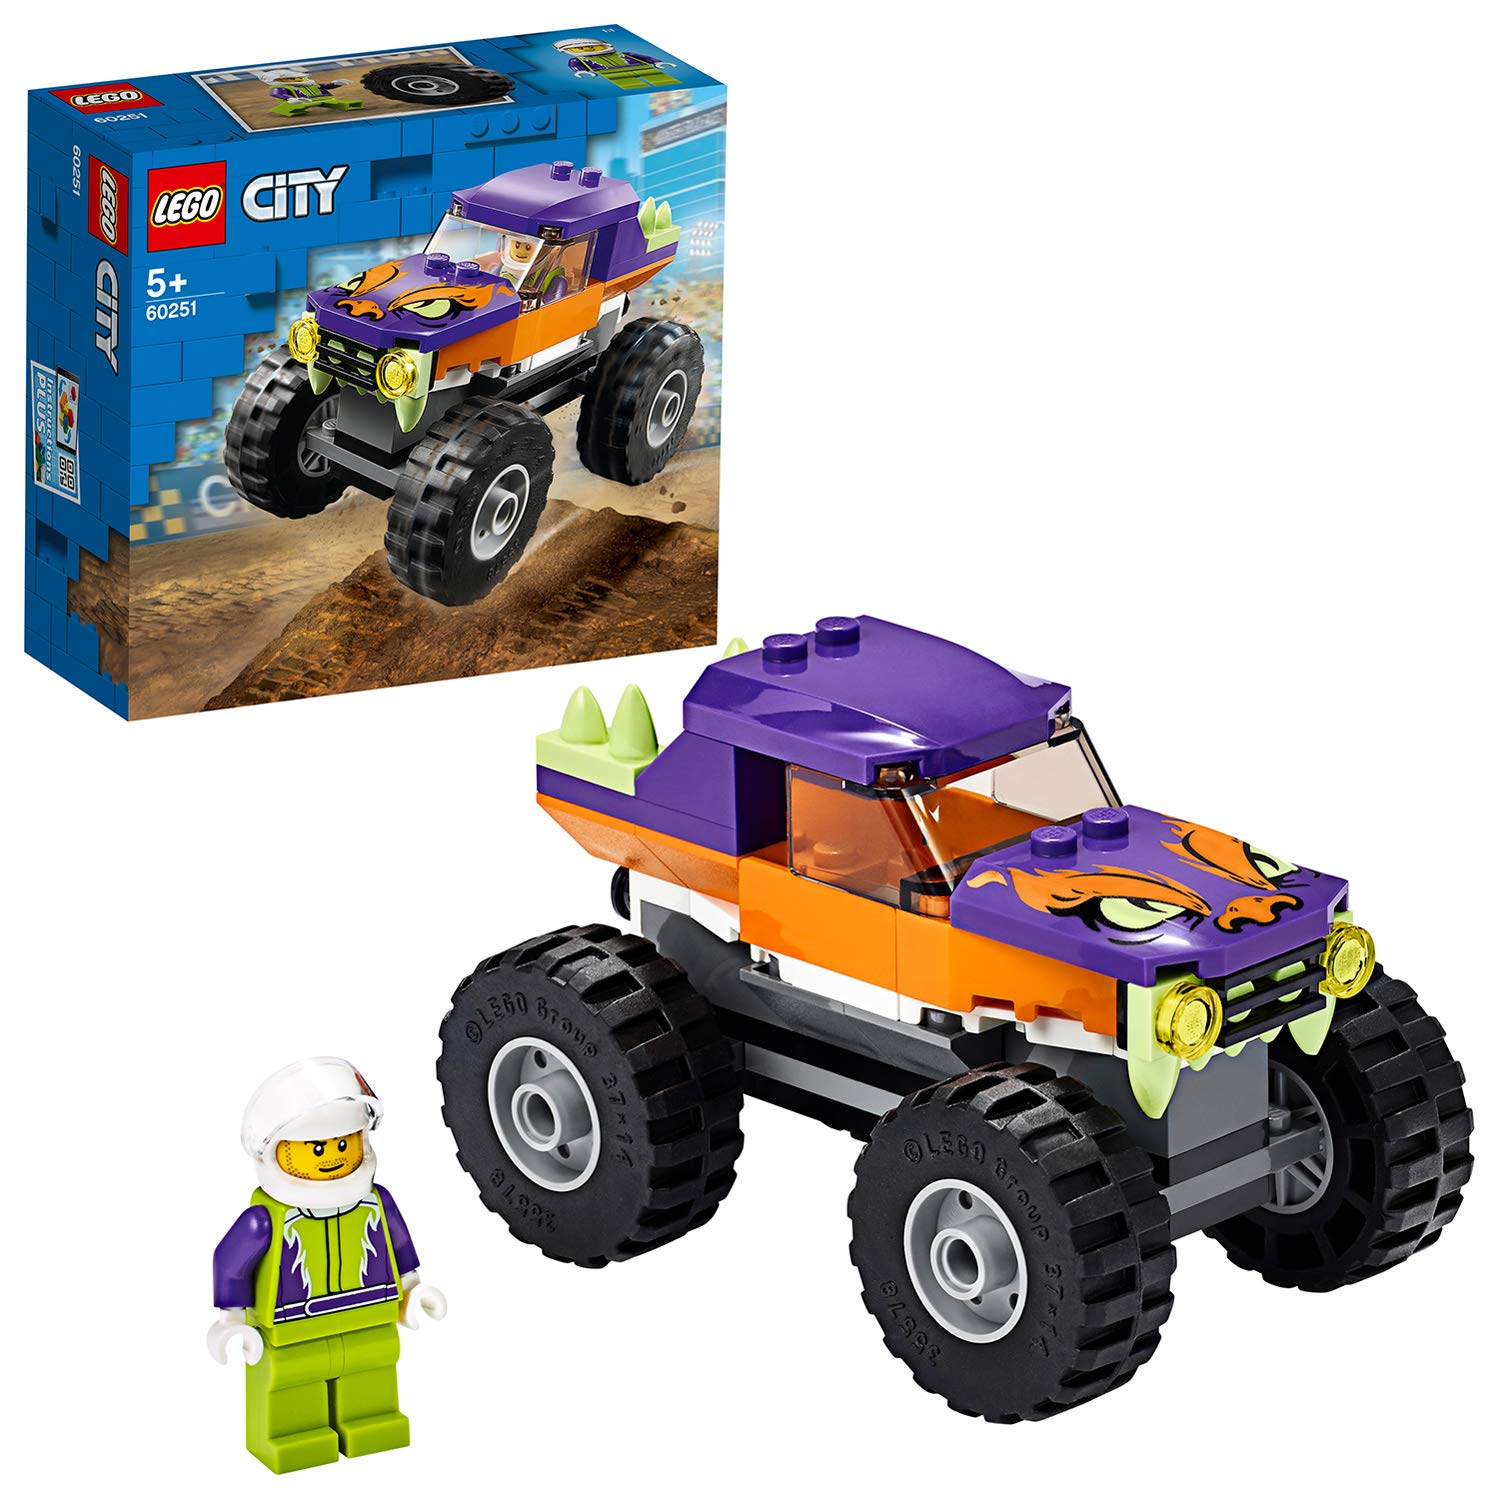 LEGO 60251 Monster Truck 60251 LEGO S.P.A.